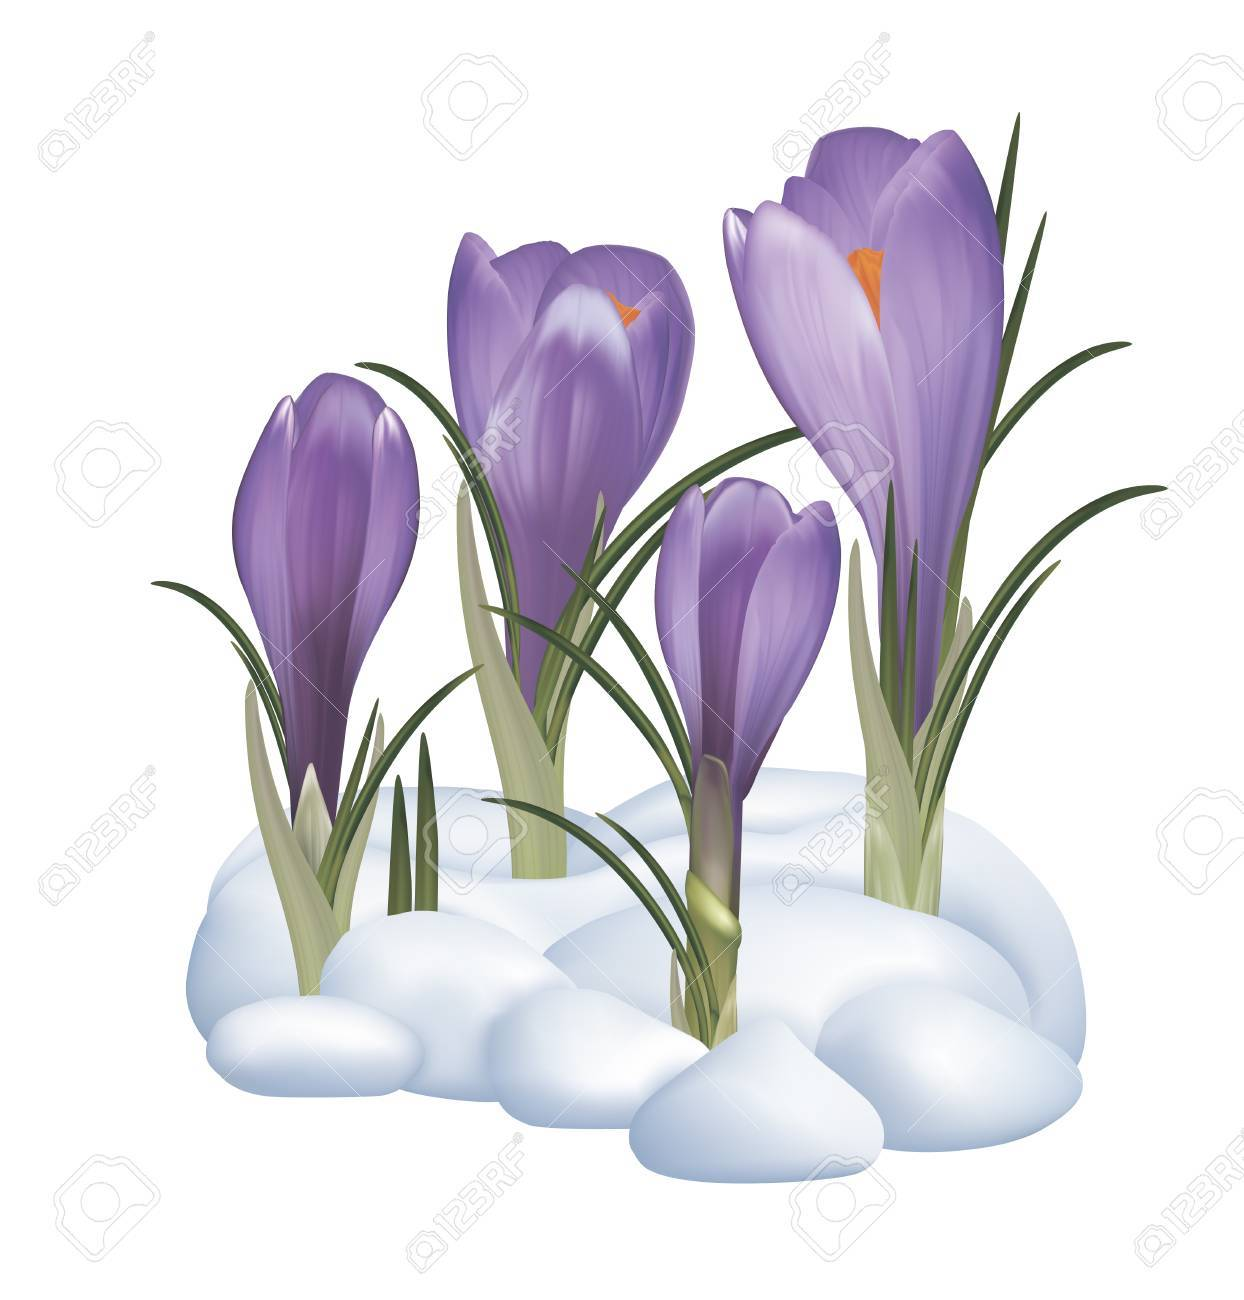 Spring Snow Clipart